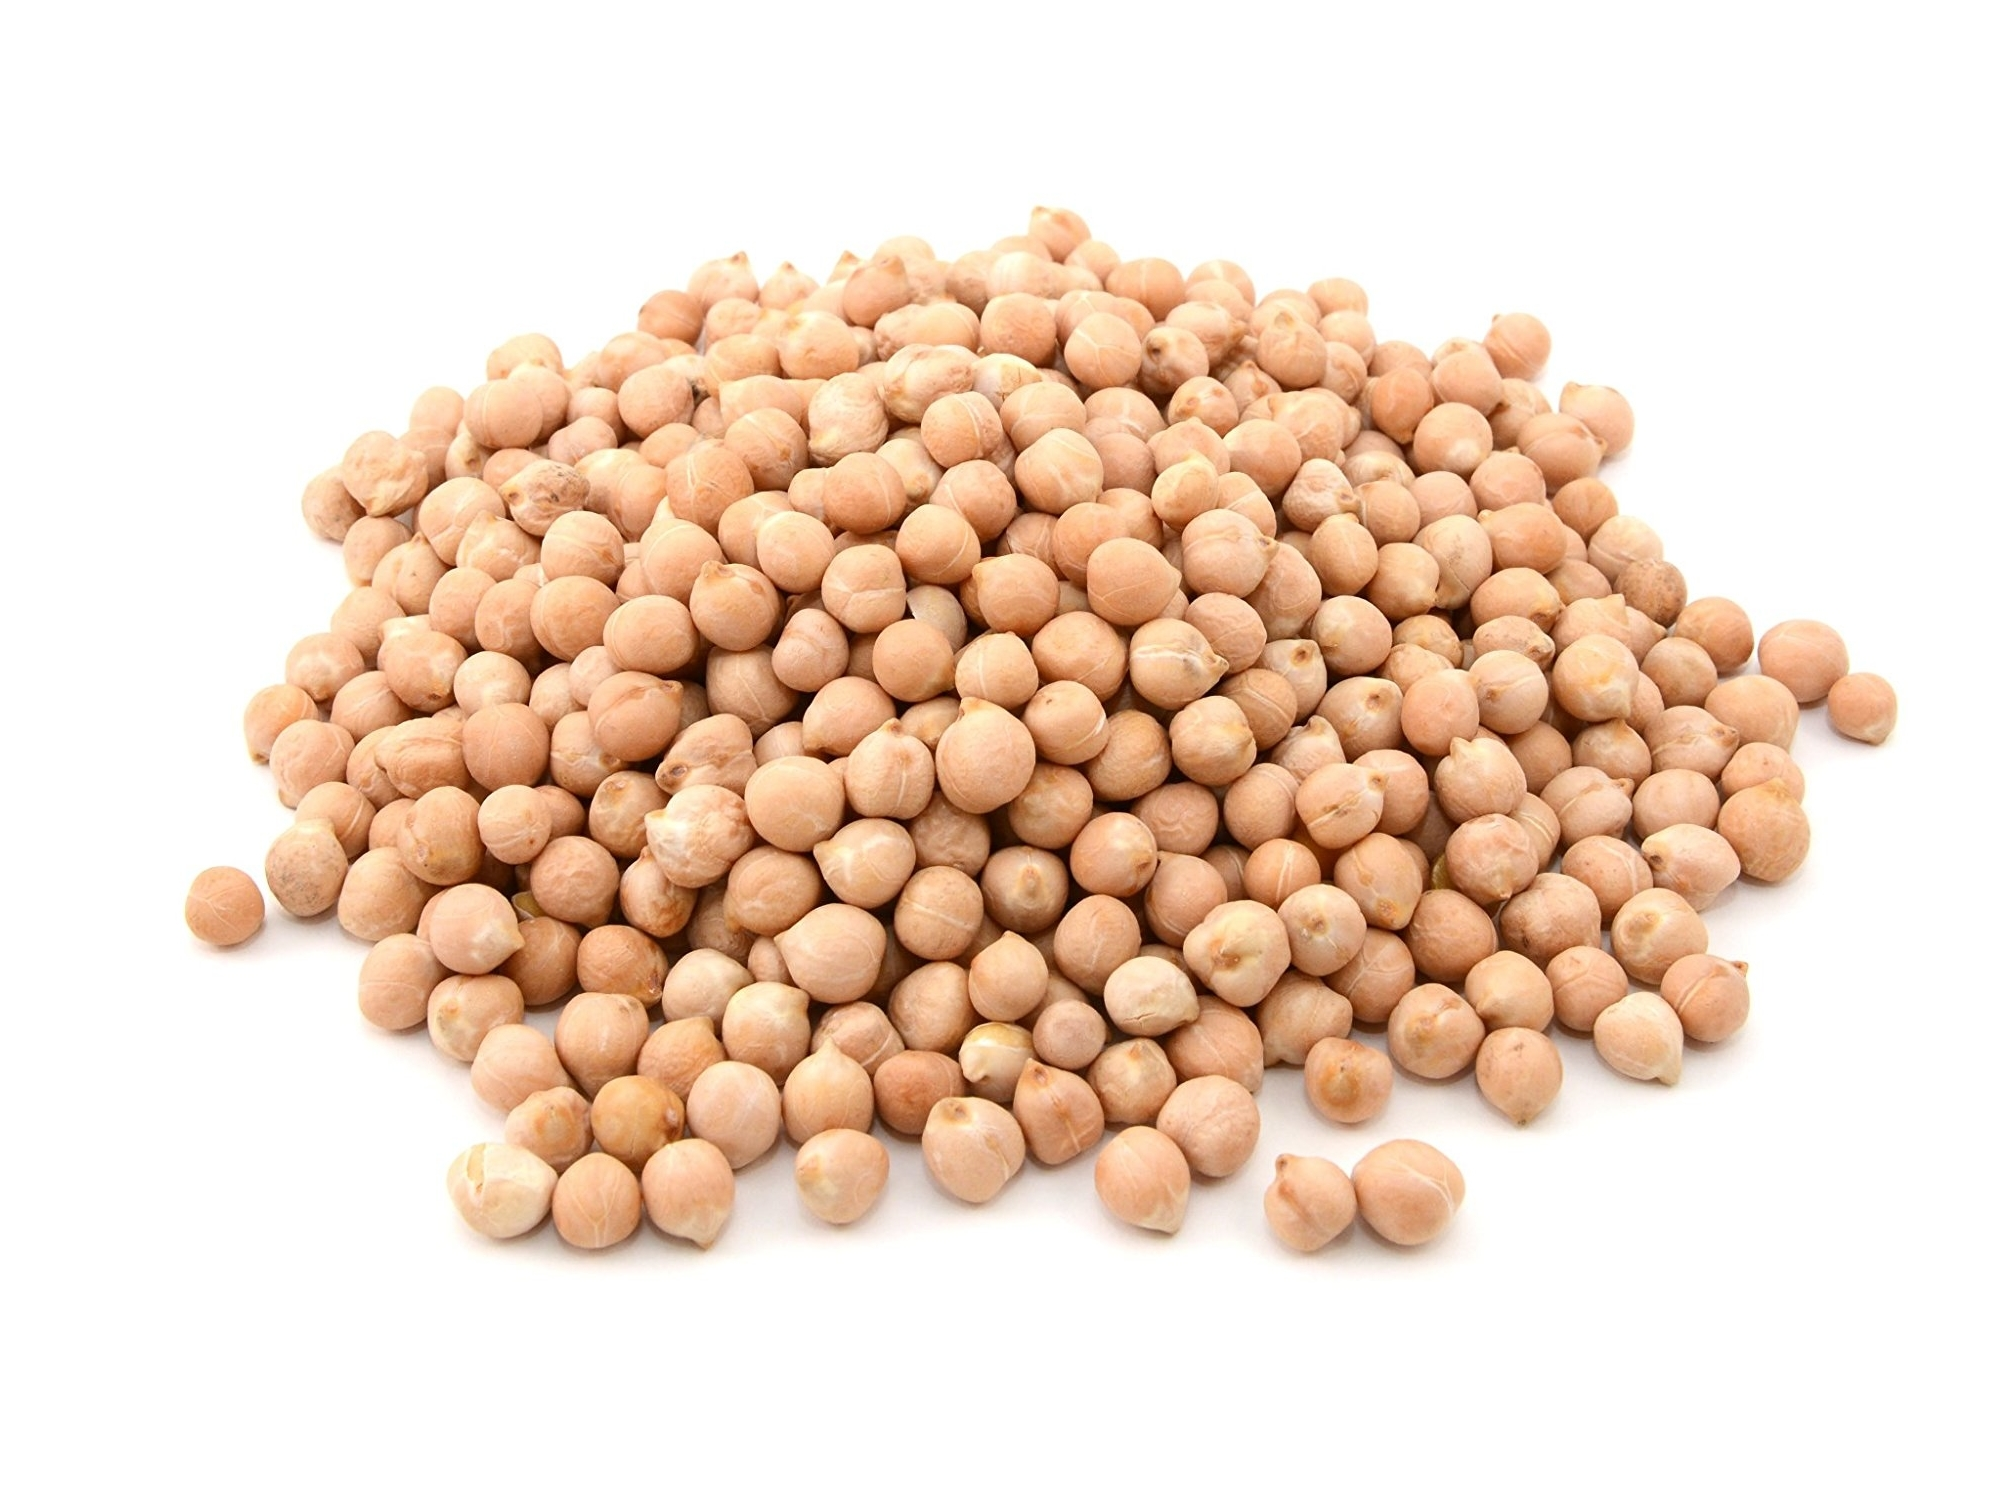 a small mound of dried chickpeas